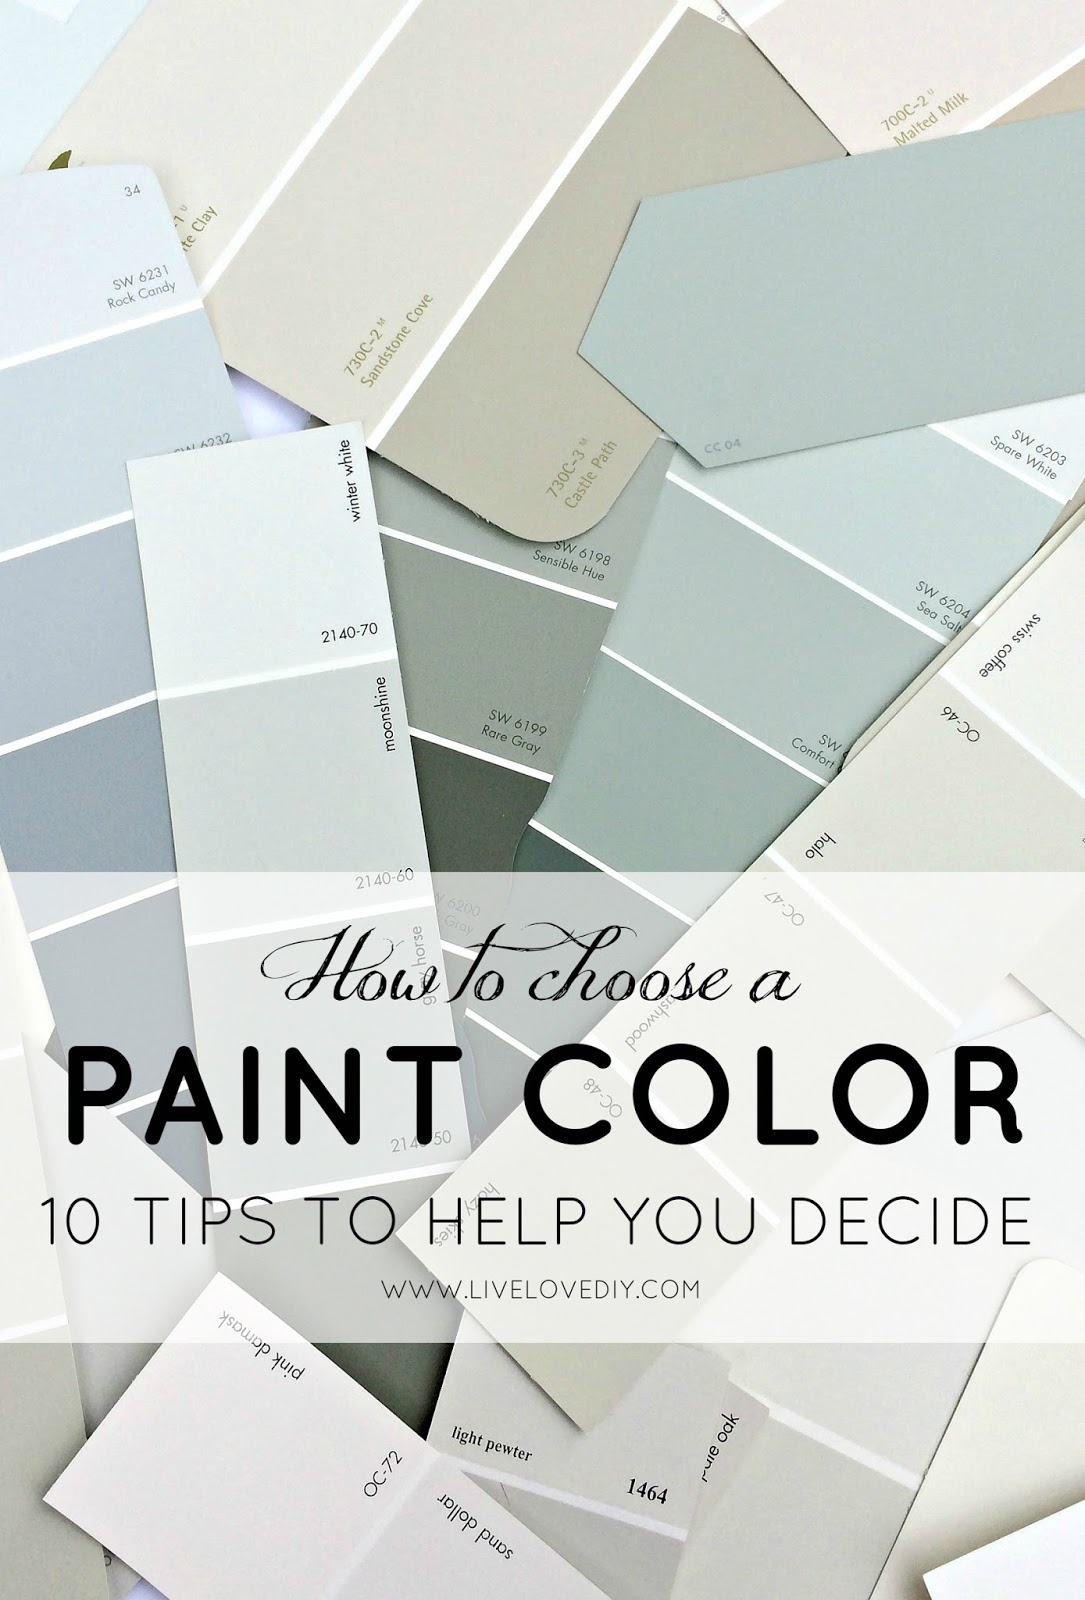 How to choose paint color 2017 grasscloth wallpaper for Choosing paint colors